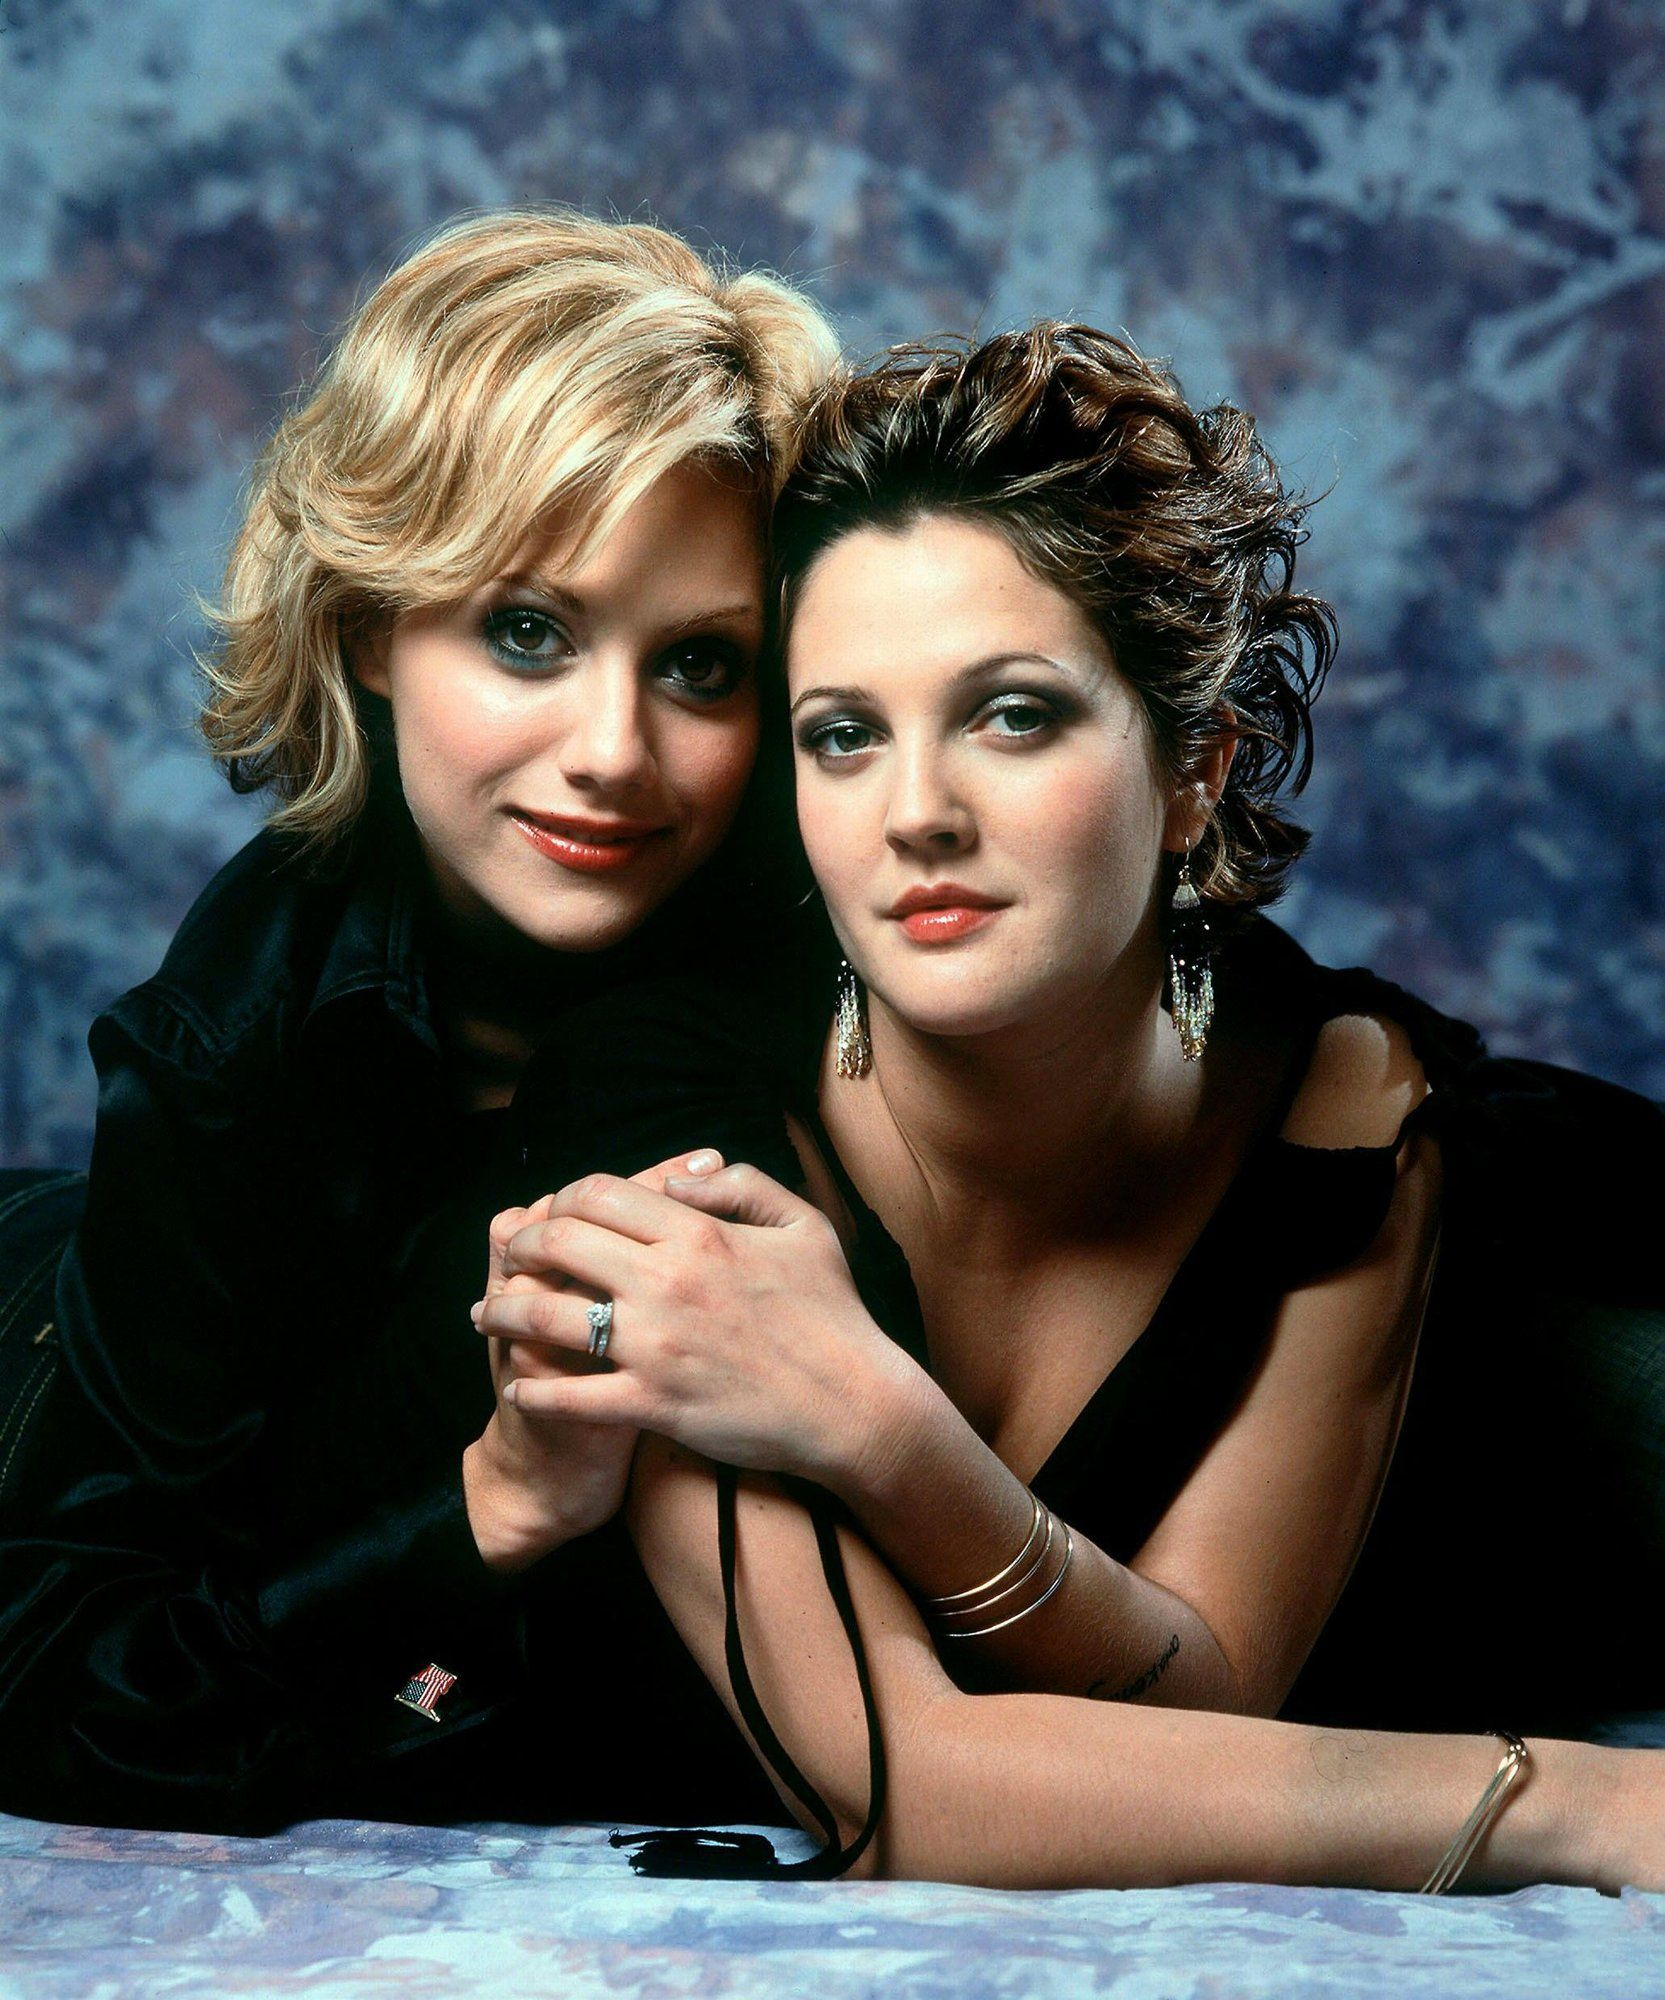 {9 Pics} Drew Barrymore and Brittany Murphy 'Riding in